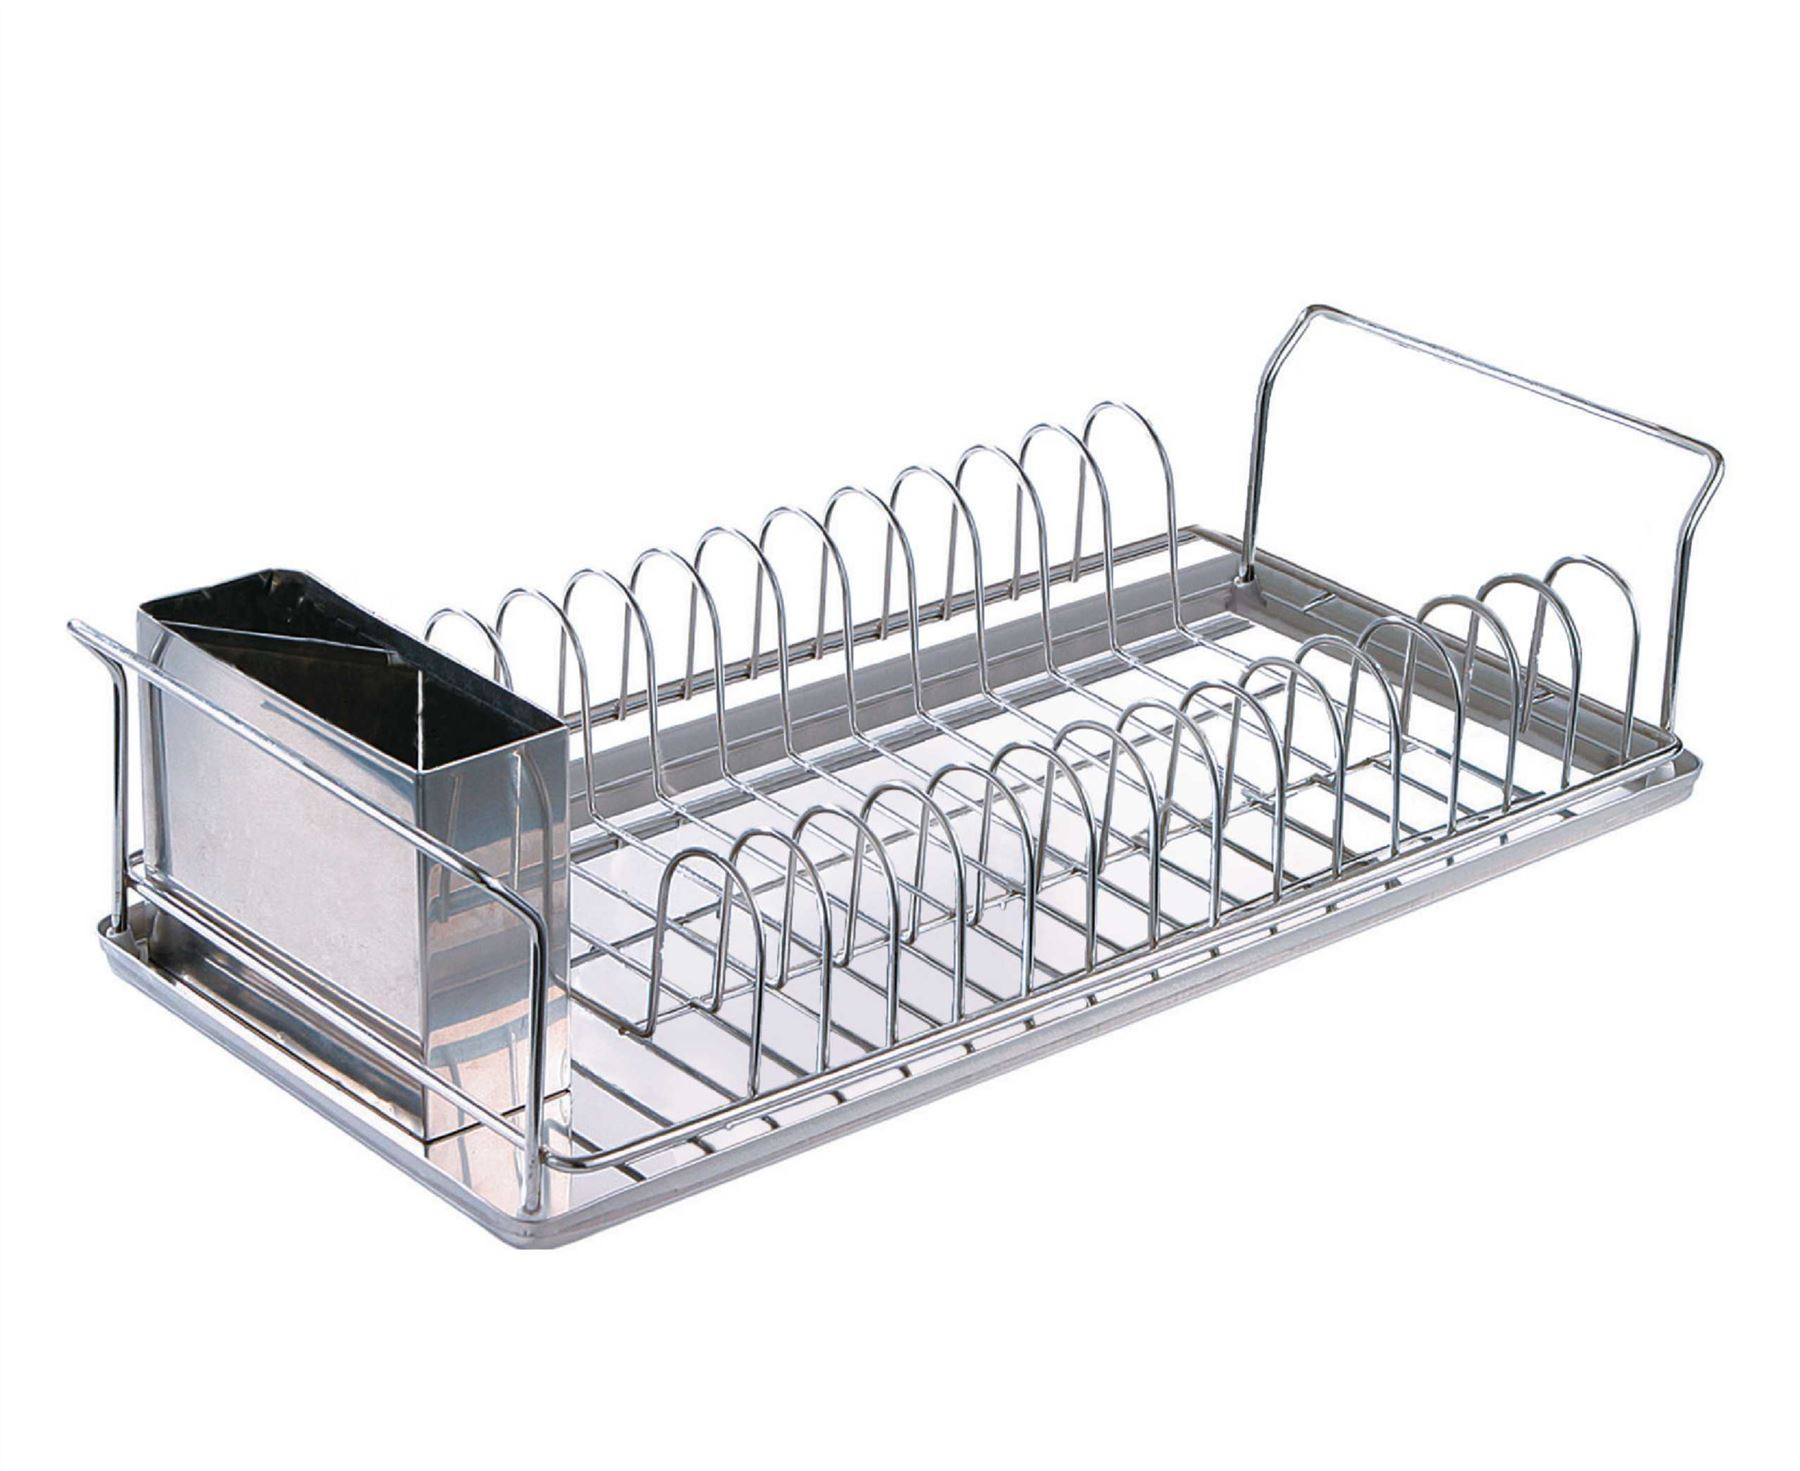 Slimline drainer tray dish cutlery rack kitchen stainless Small stainless steel dish drying rack